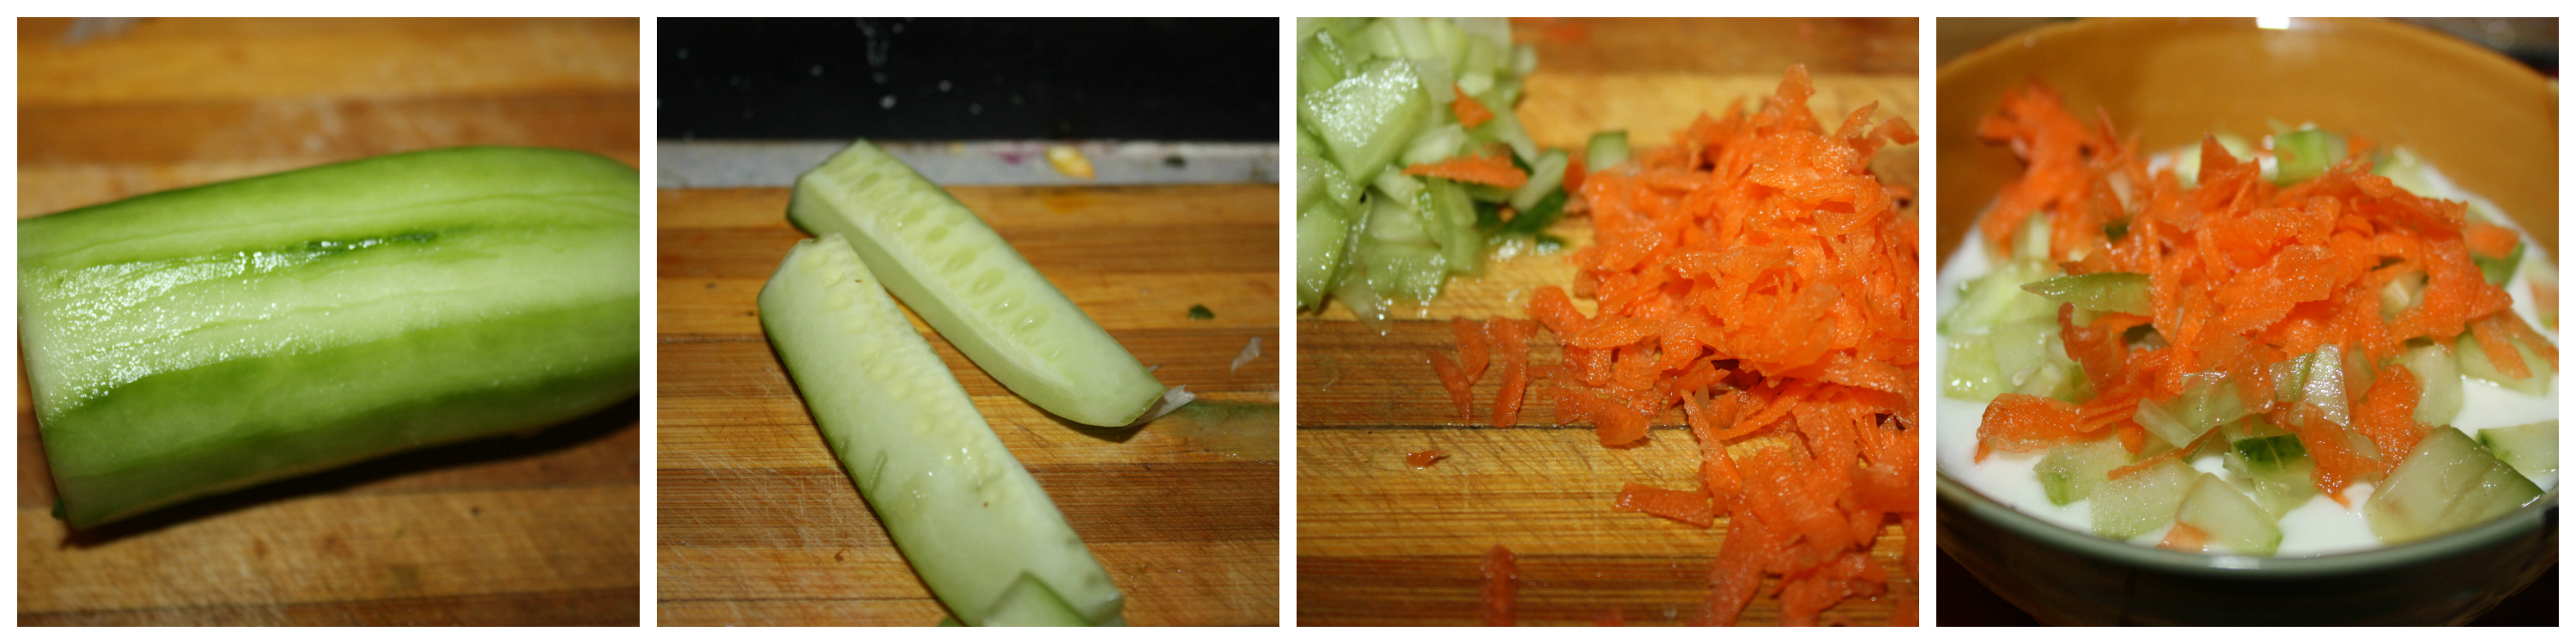 Cucumber Carrot Raita/Cucumber carrot yogurt dip